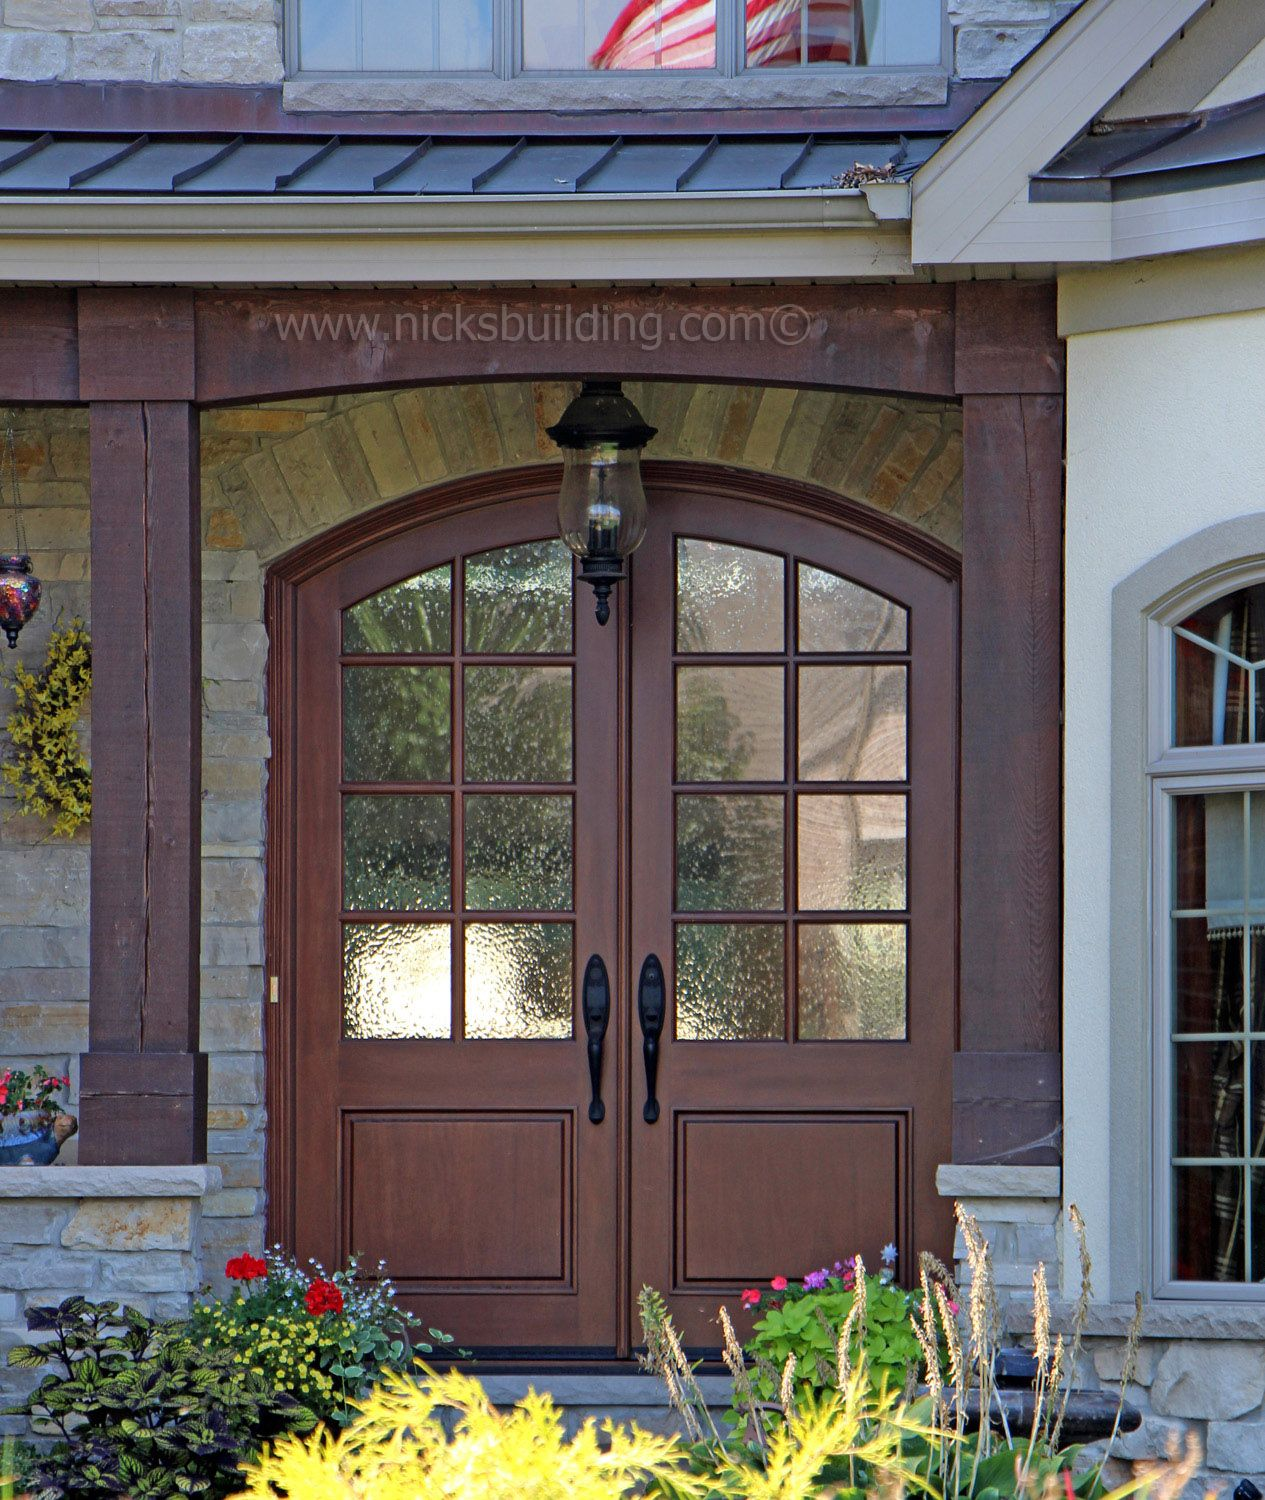 Custom Front Door Arched Top Double With Gl Beautiful Elegant Entrance Tempered Thiuch More At Www Nicksbuilding